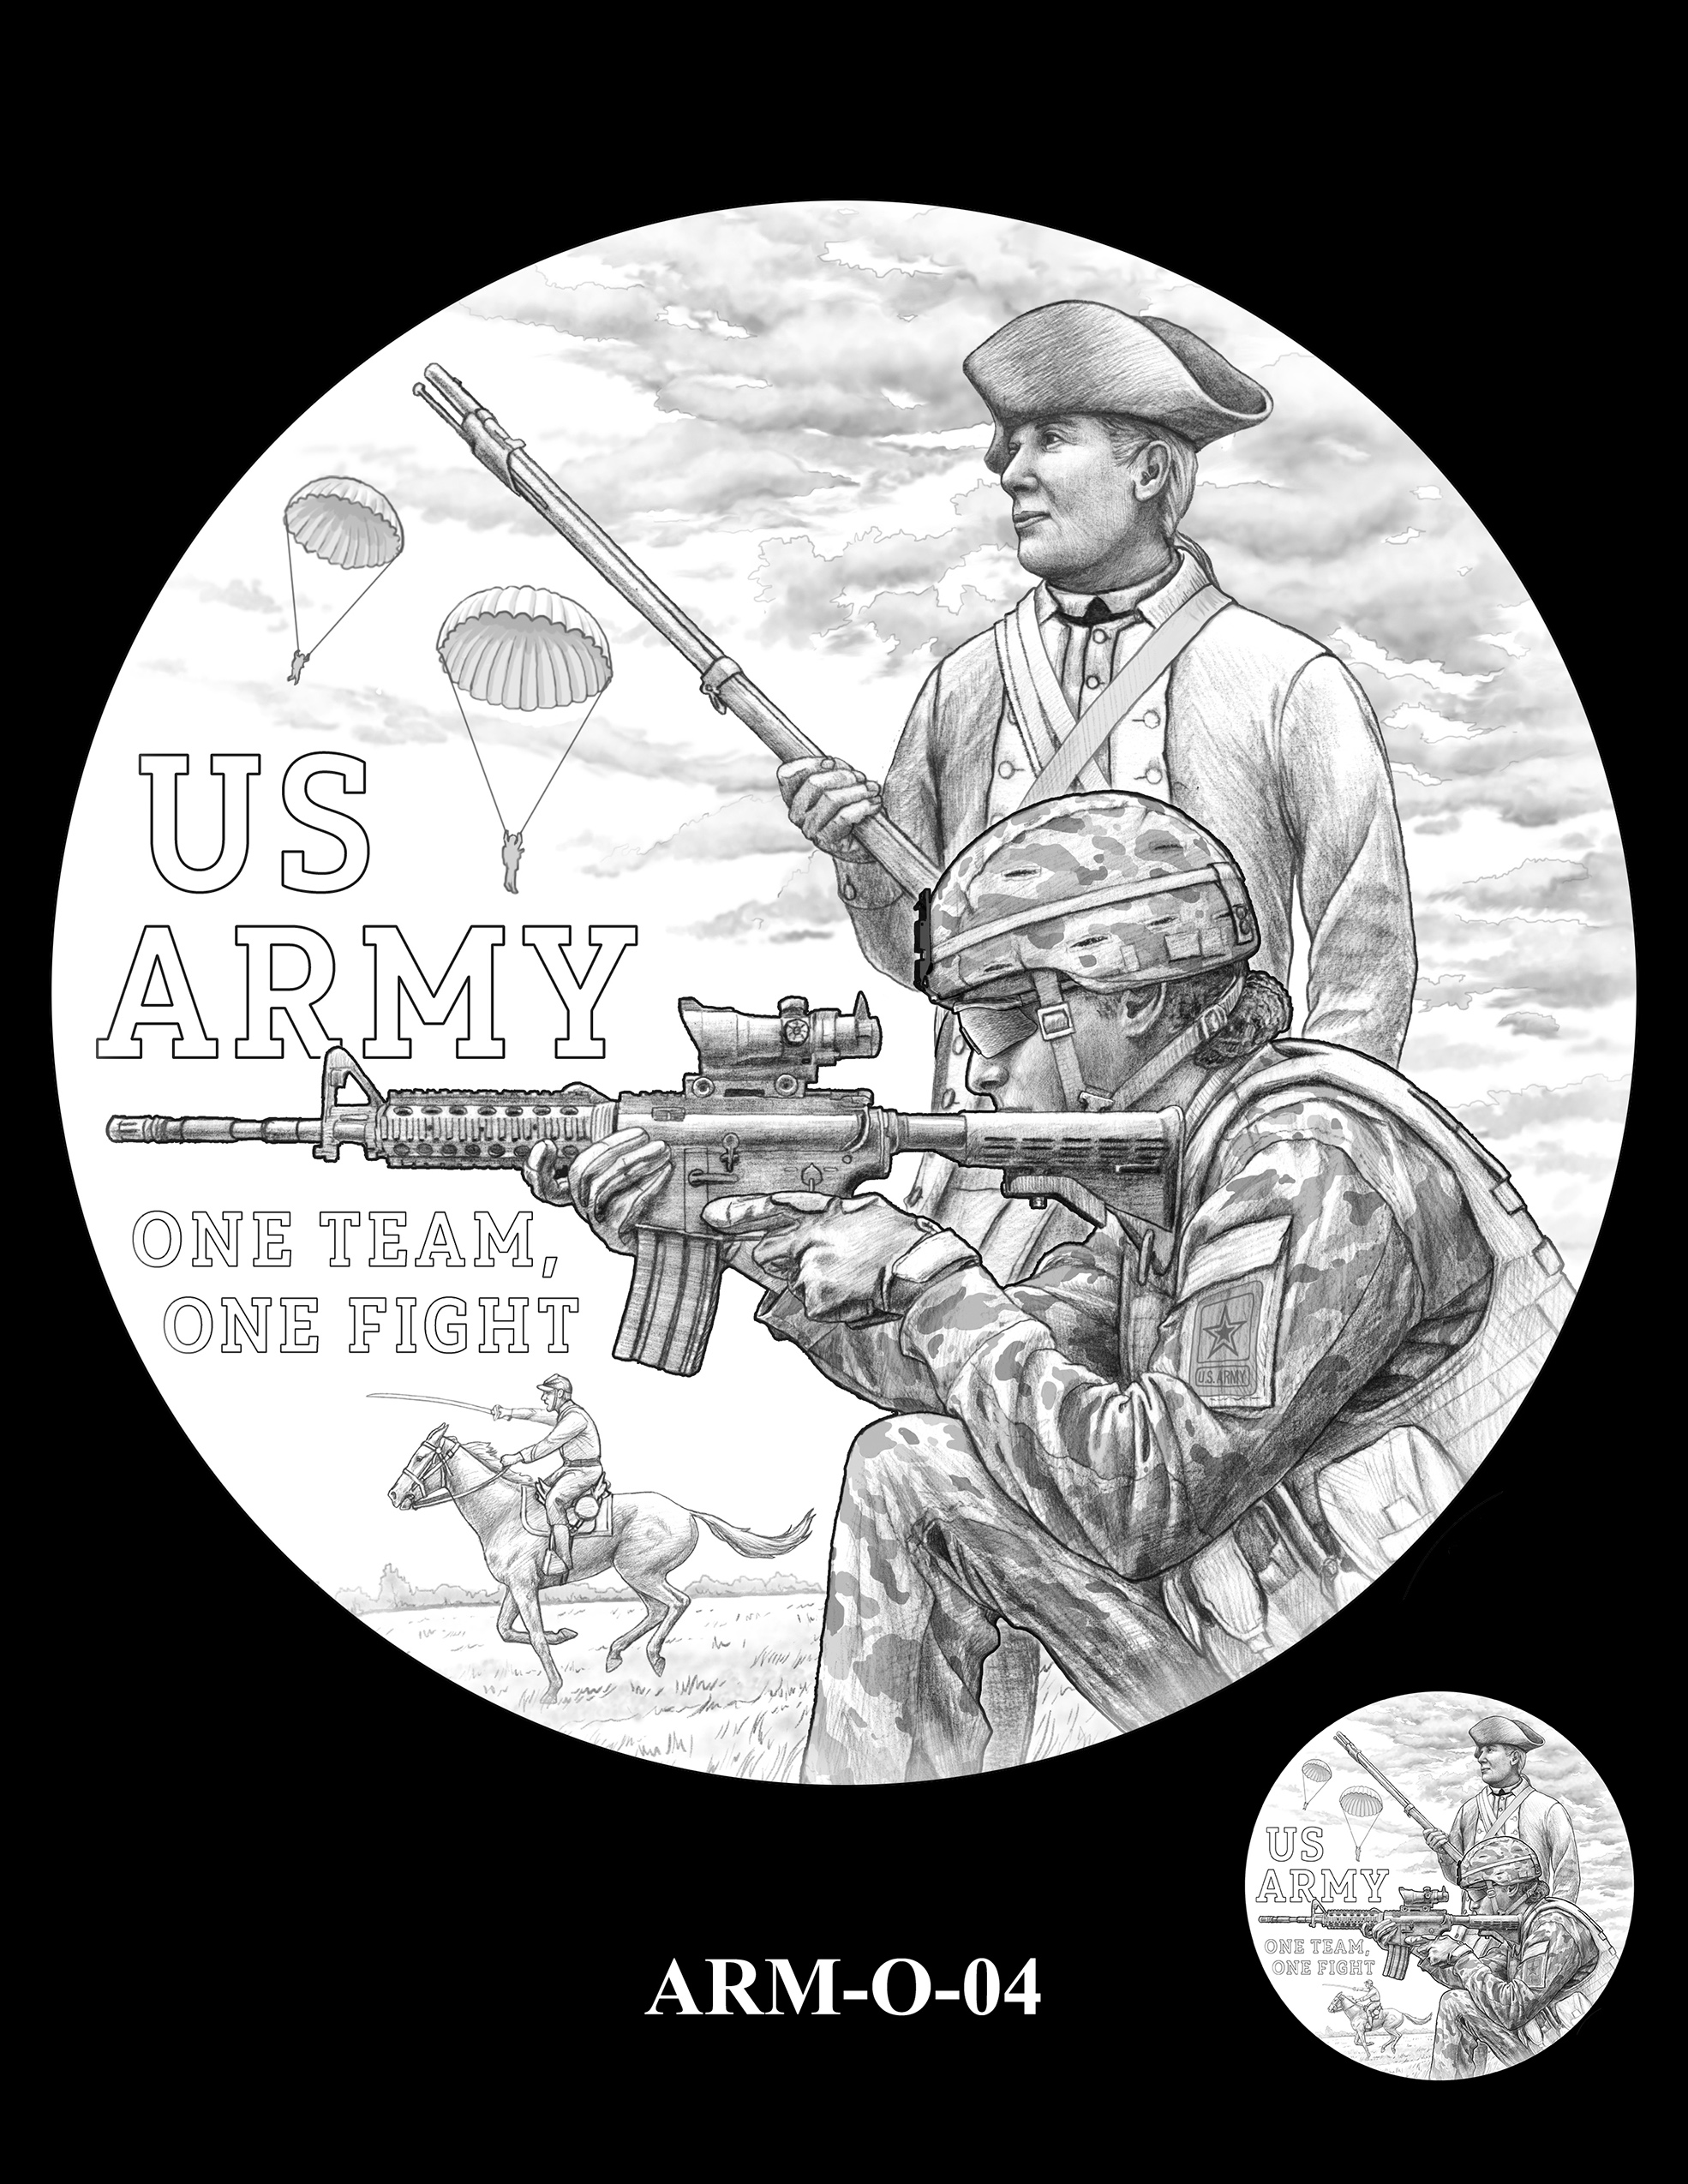 ARM-O-04 -- United States Army Silver Medal